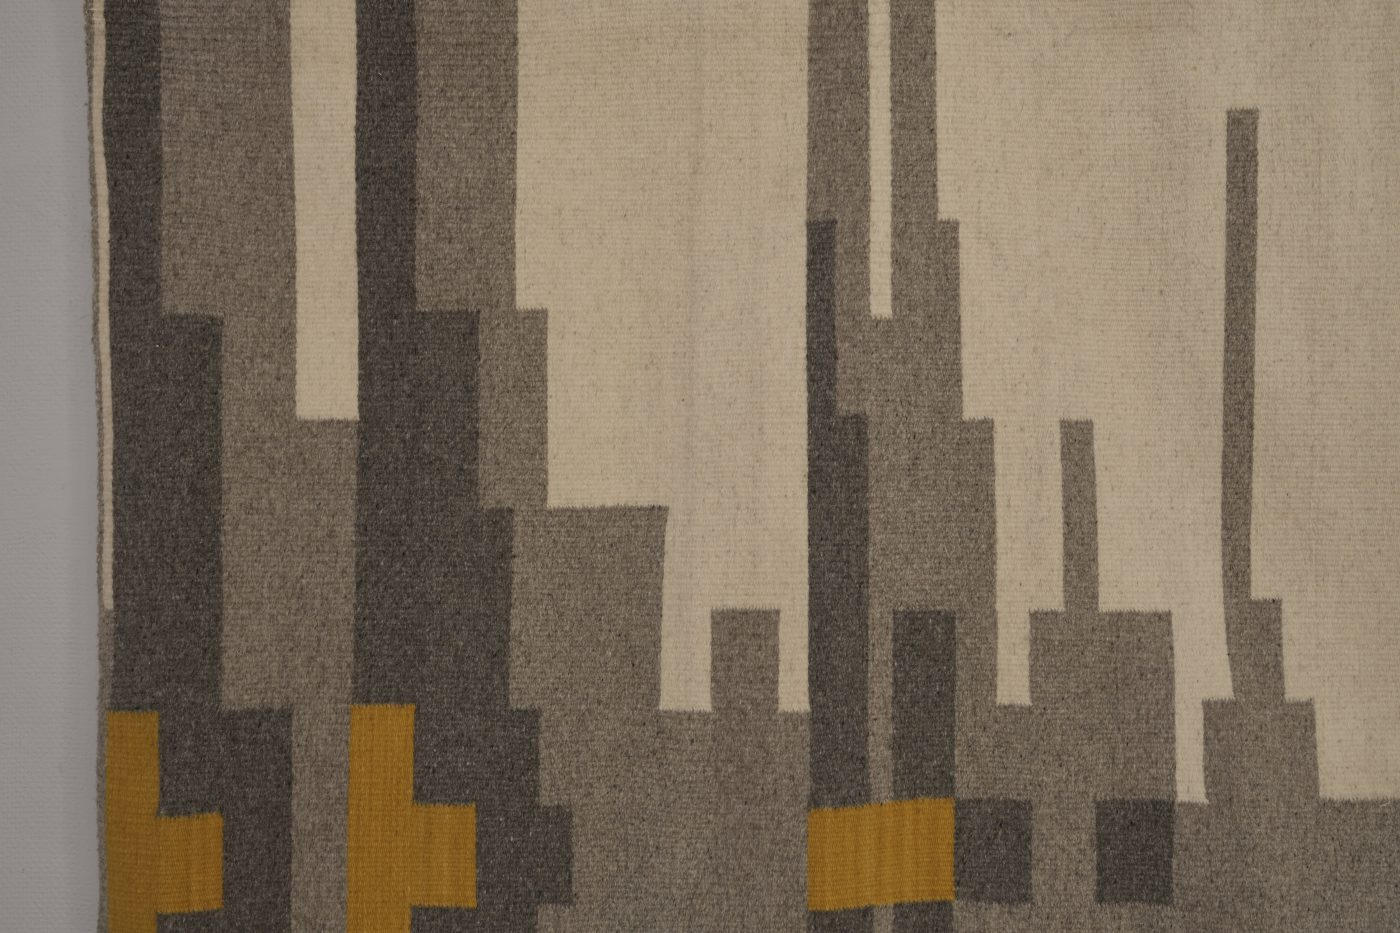 Handwoven rug, with block pattern in greys, neutrals and yellow